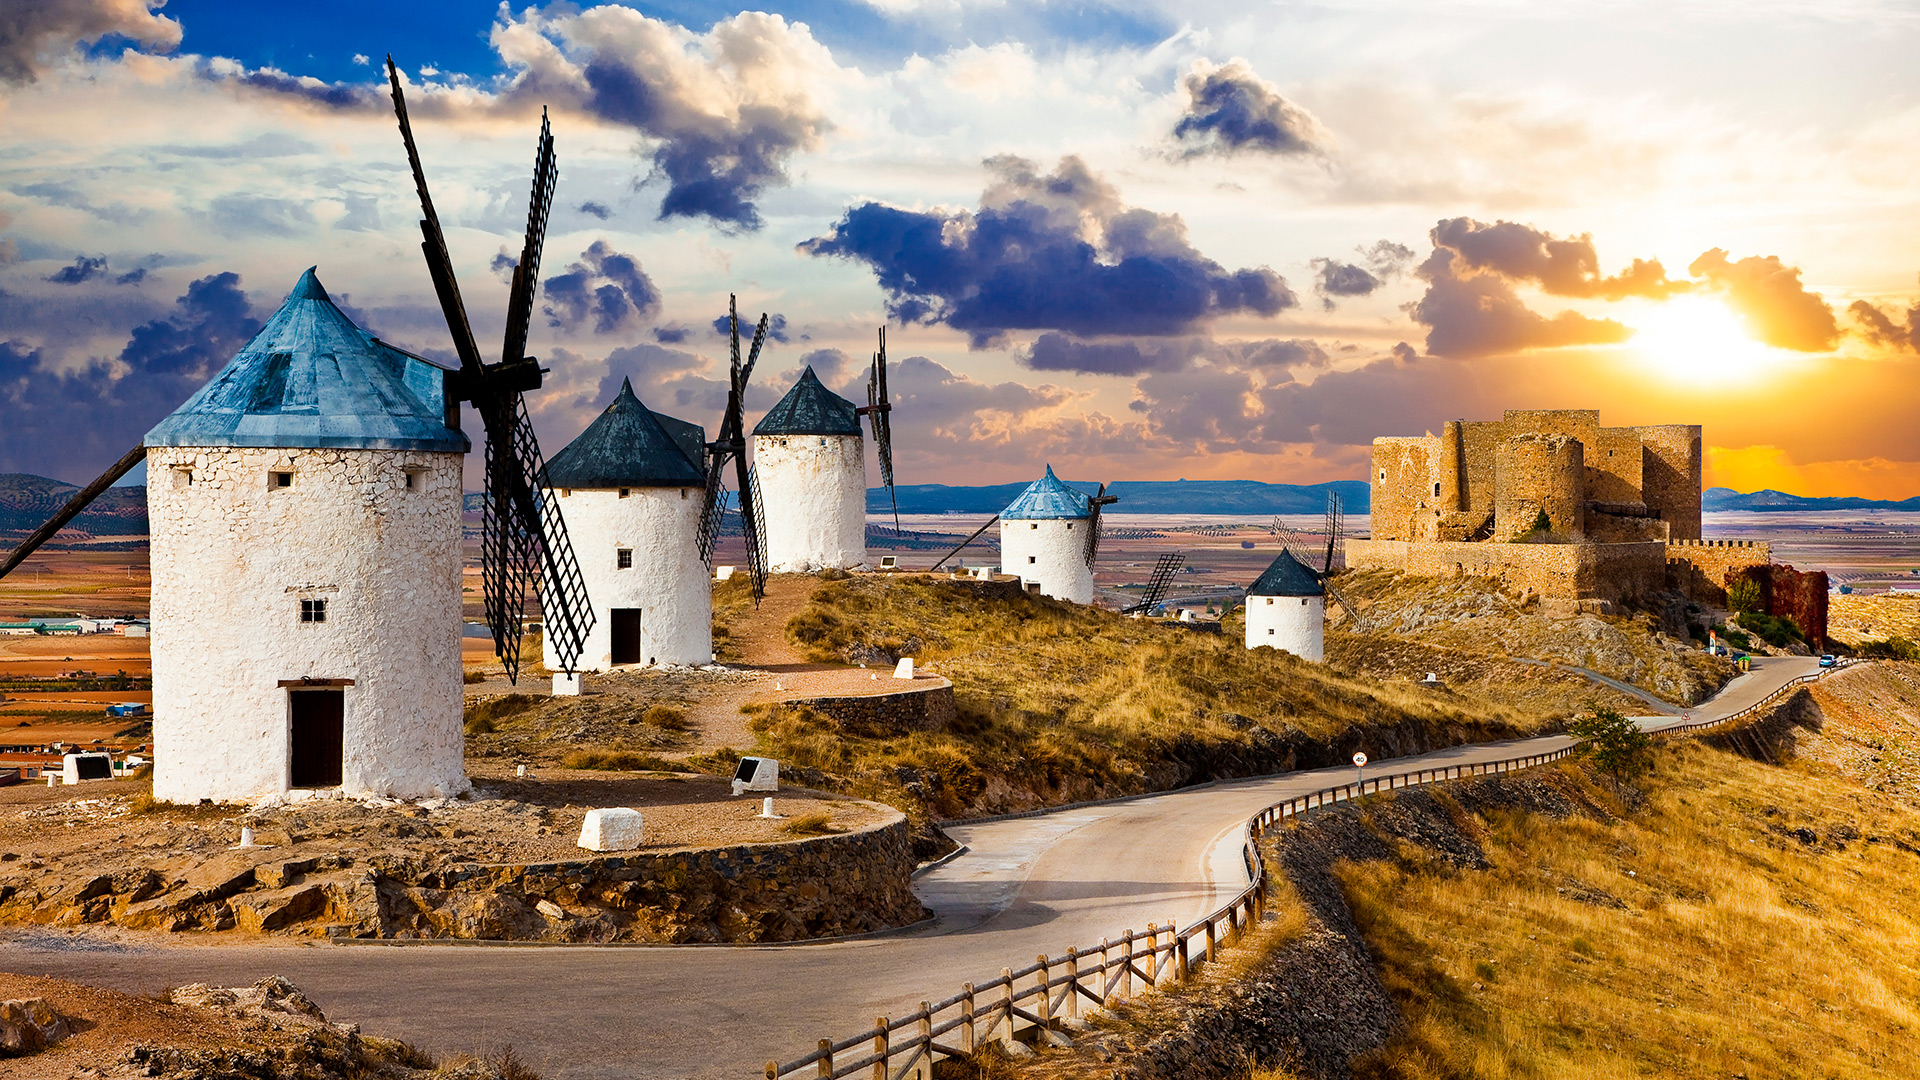 The landscapes of Cervantes